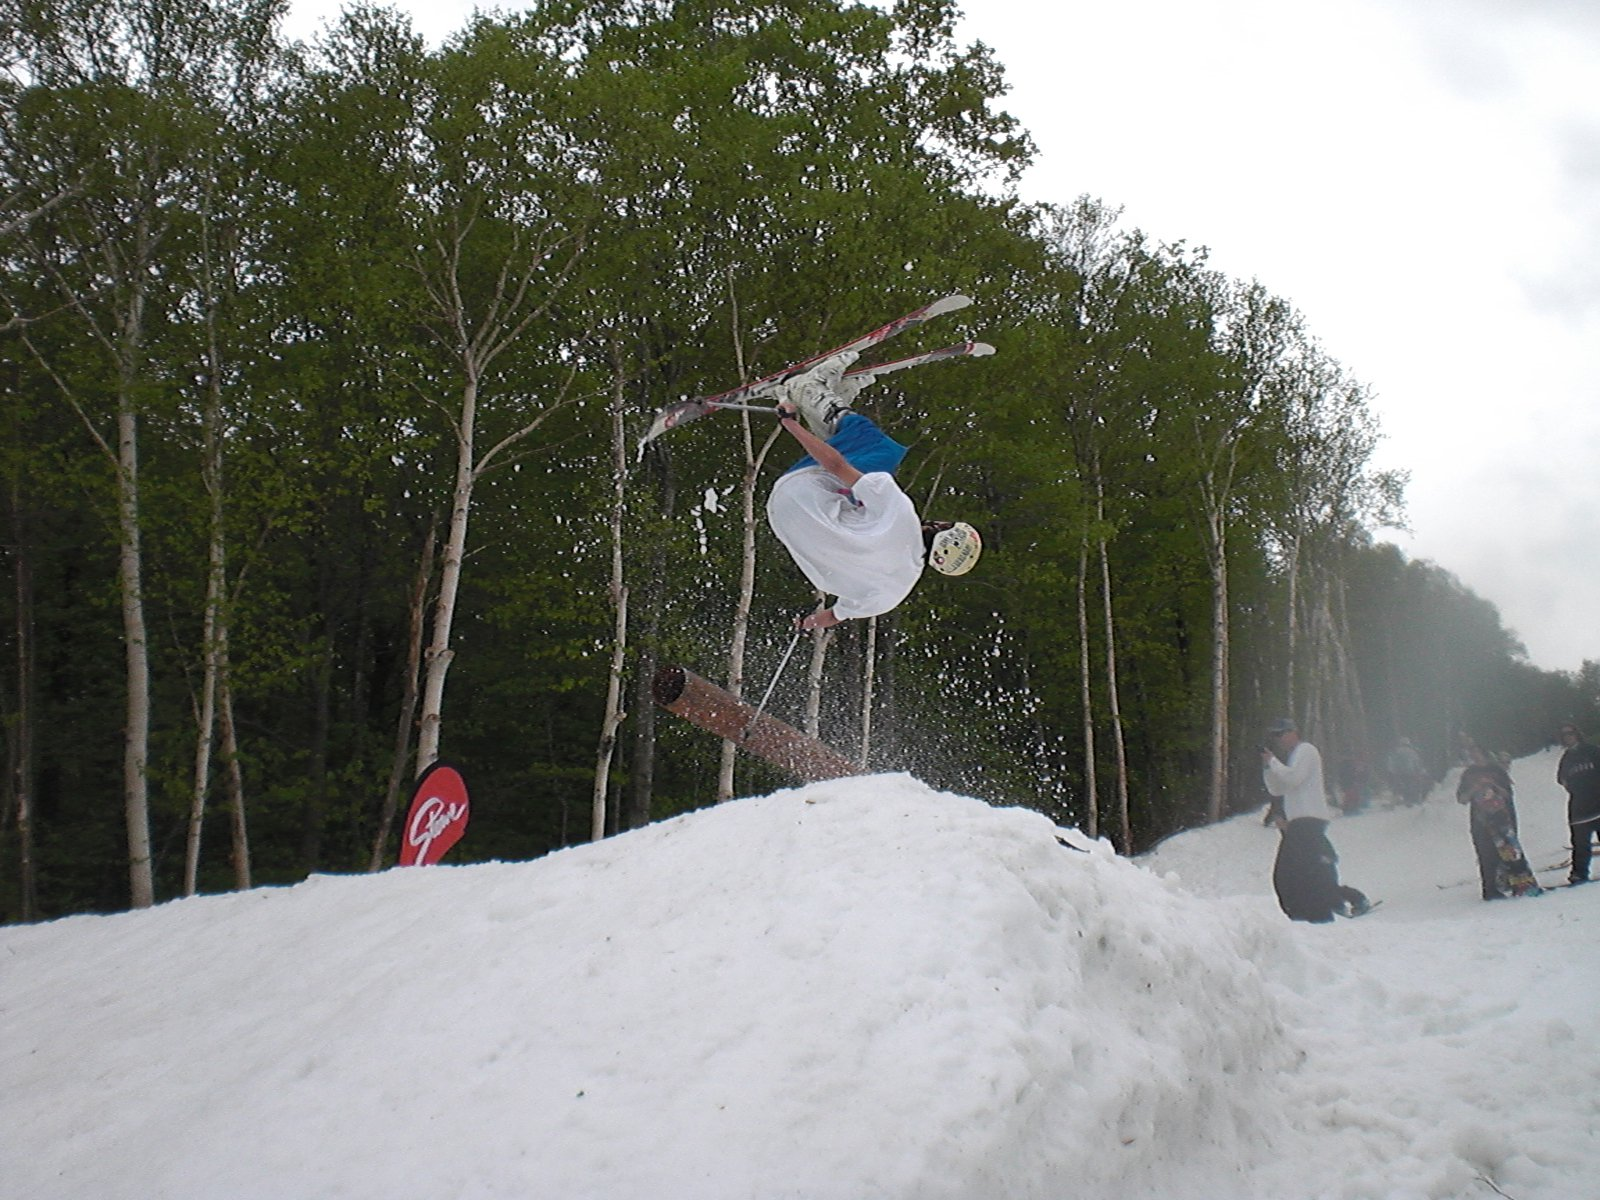 Backflip stowe